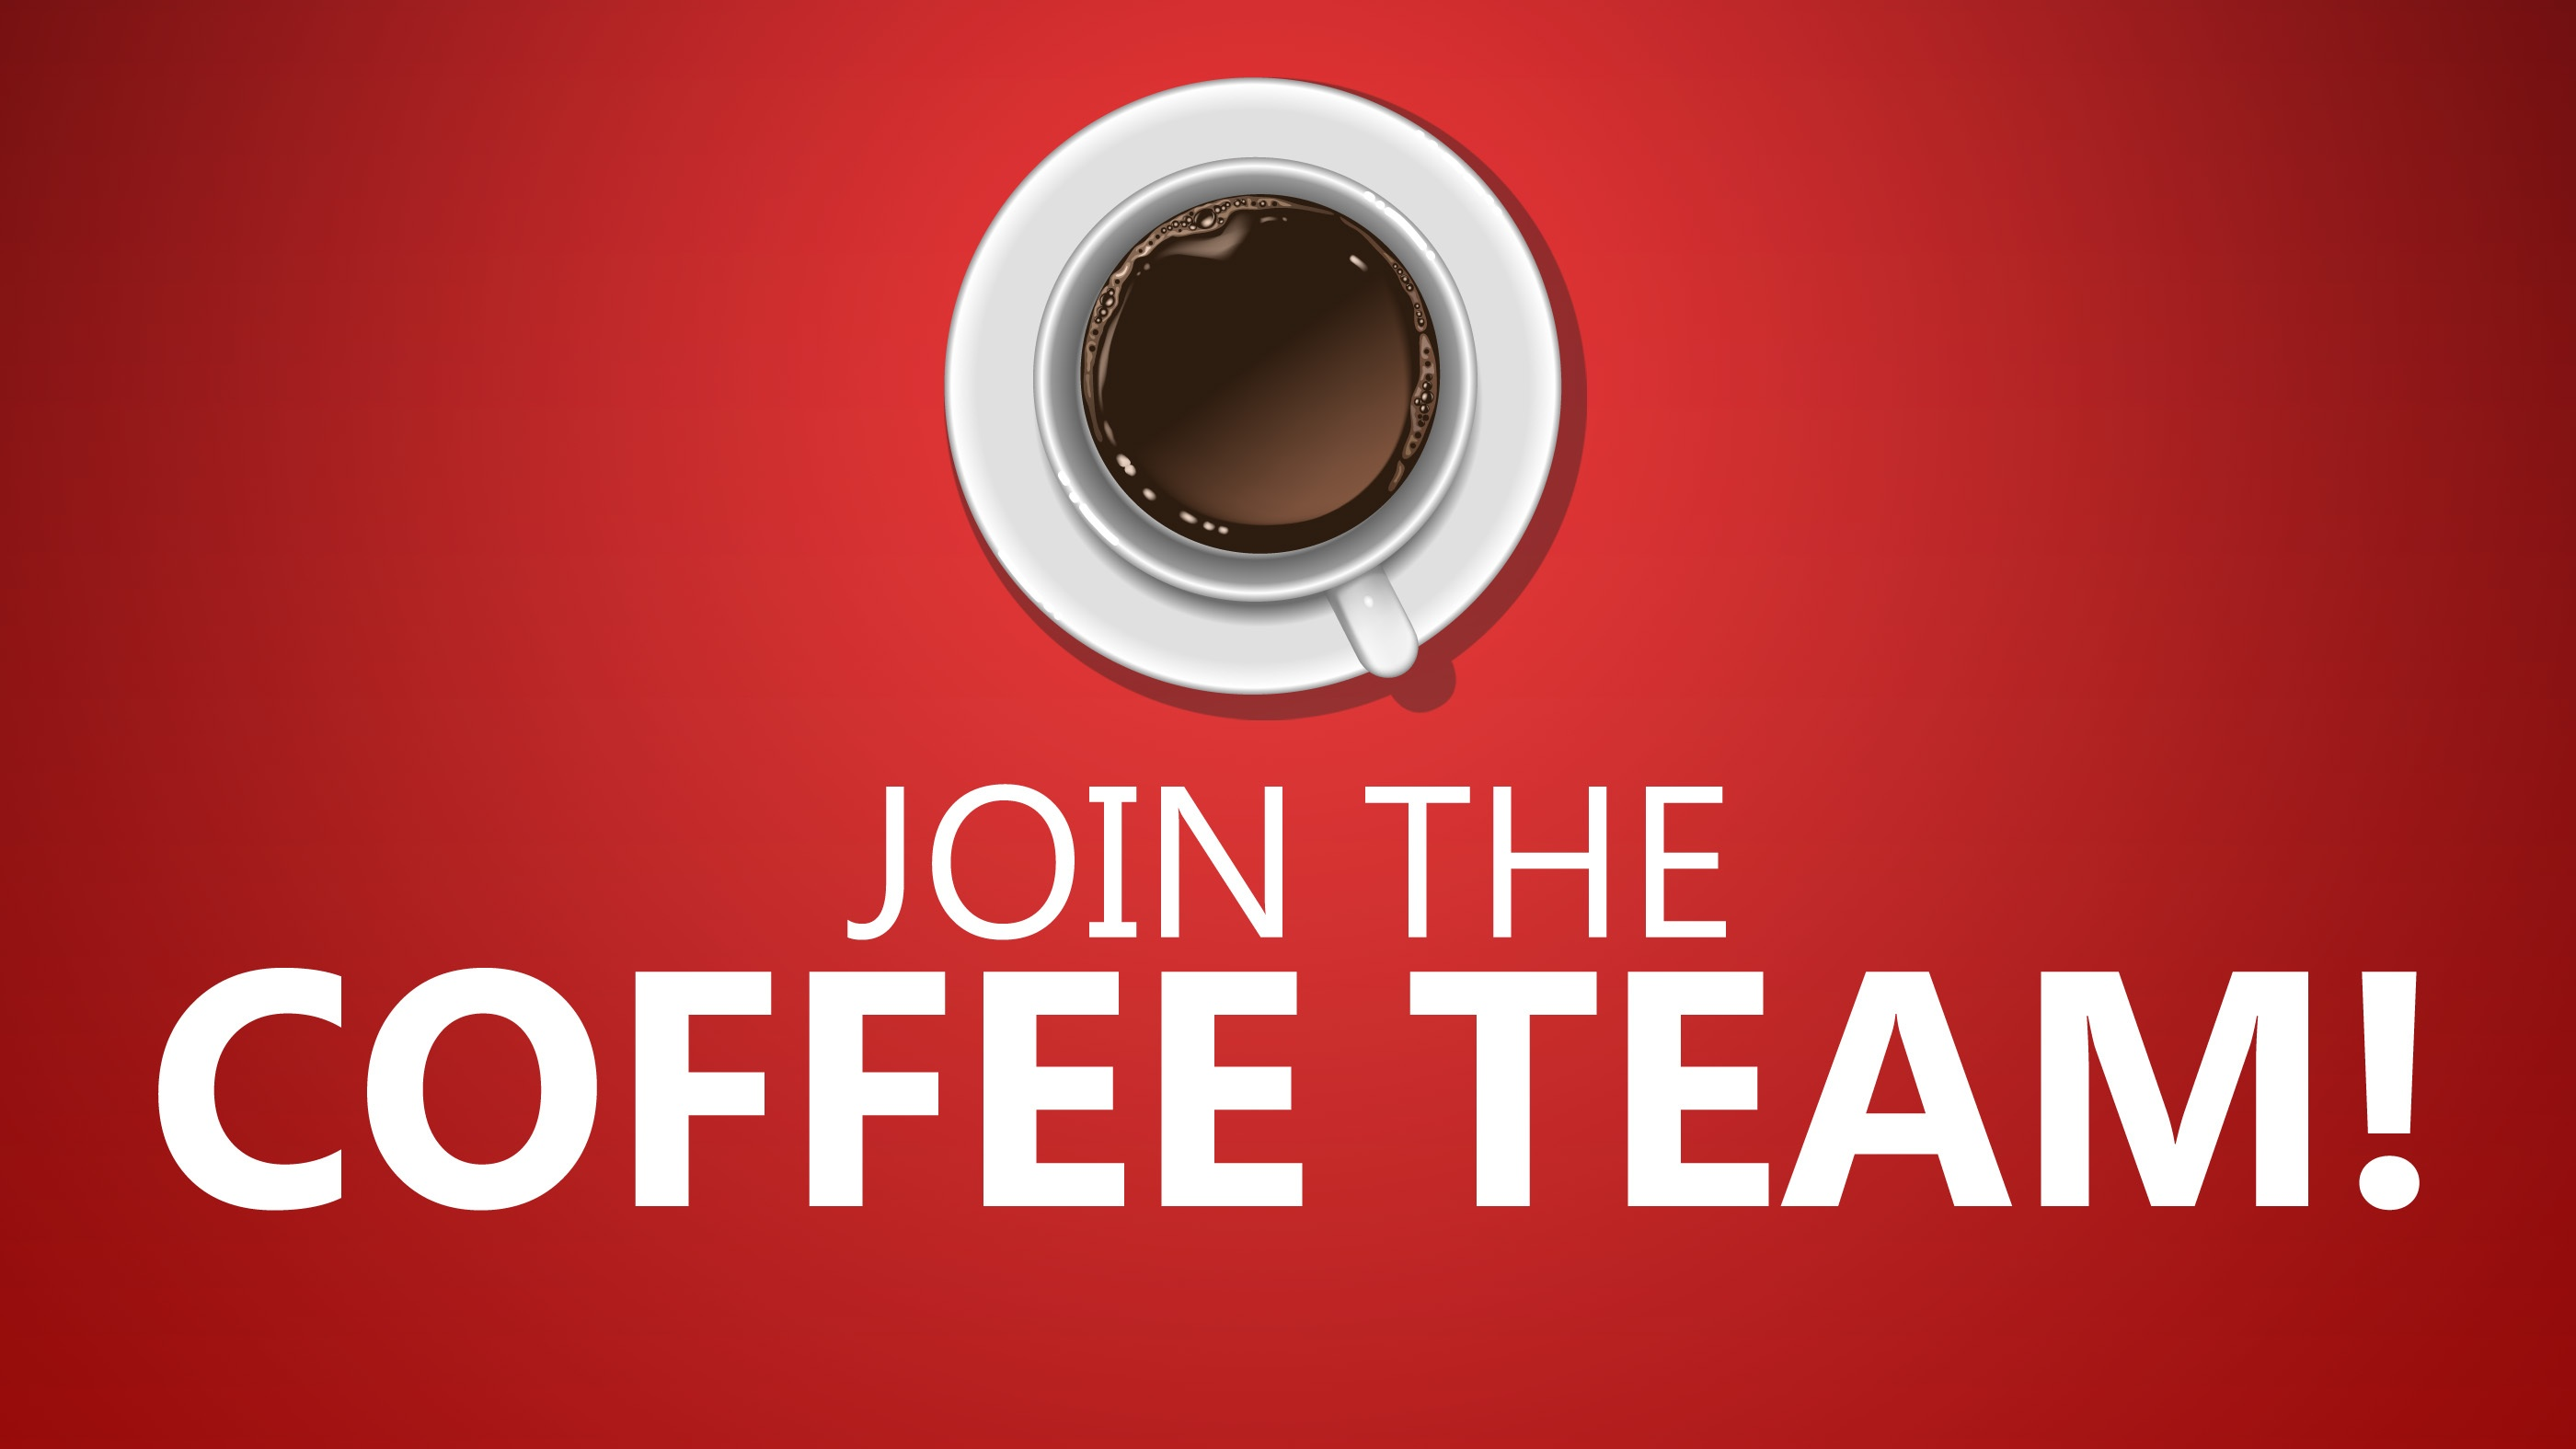 Join the Coffee Team!